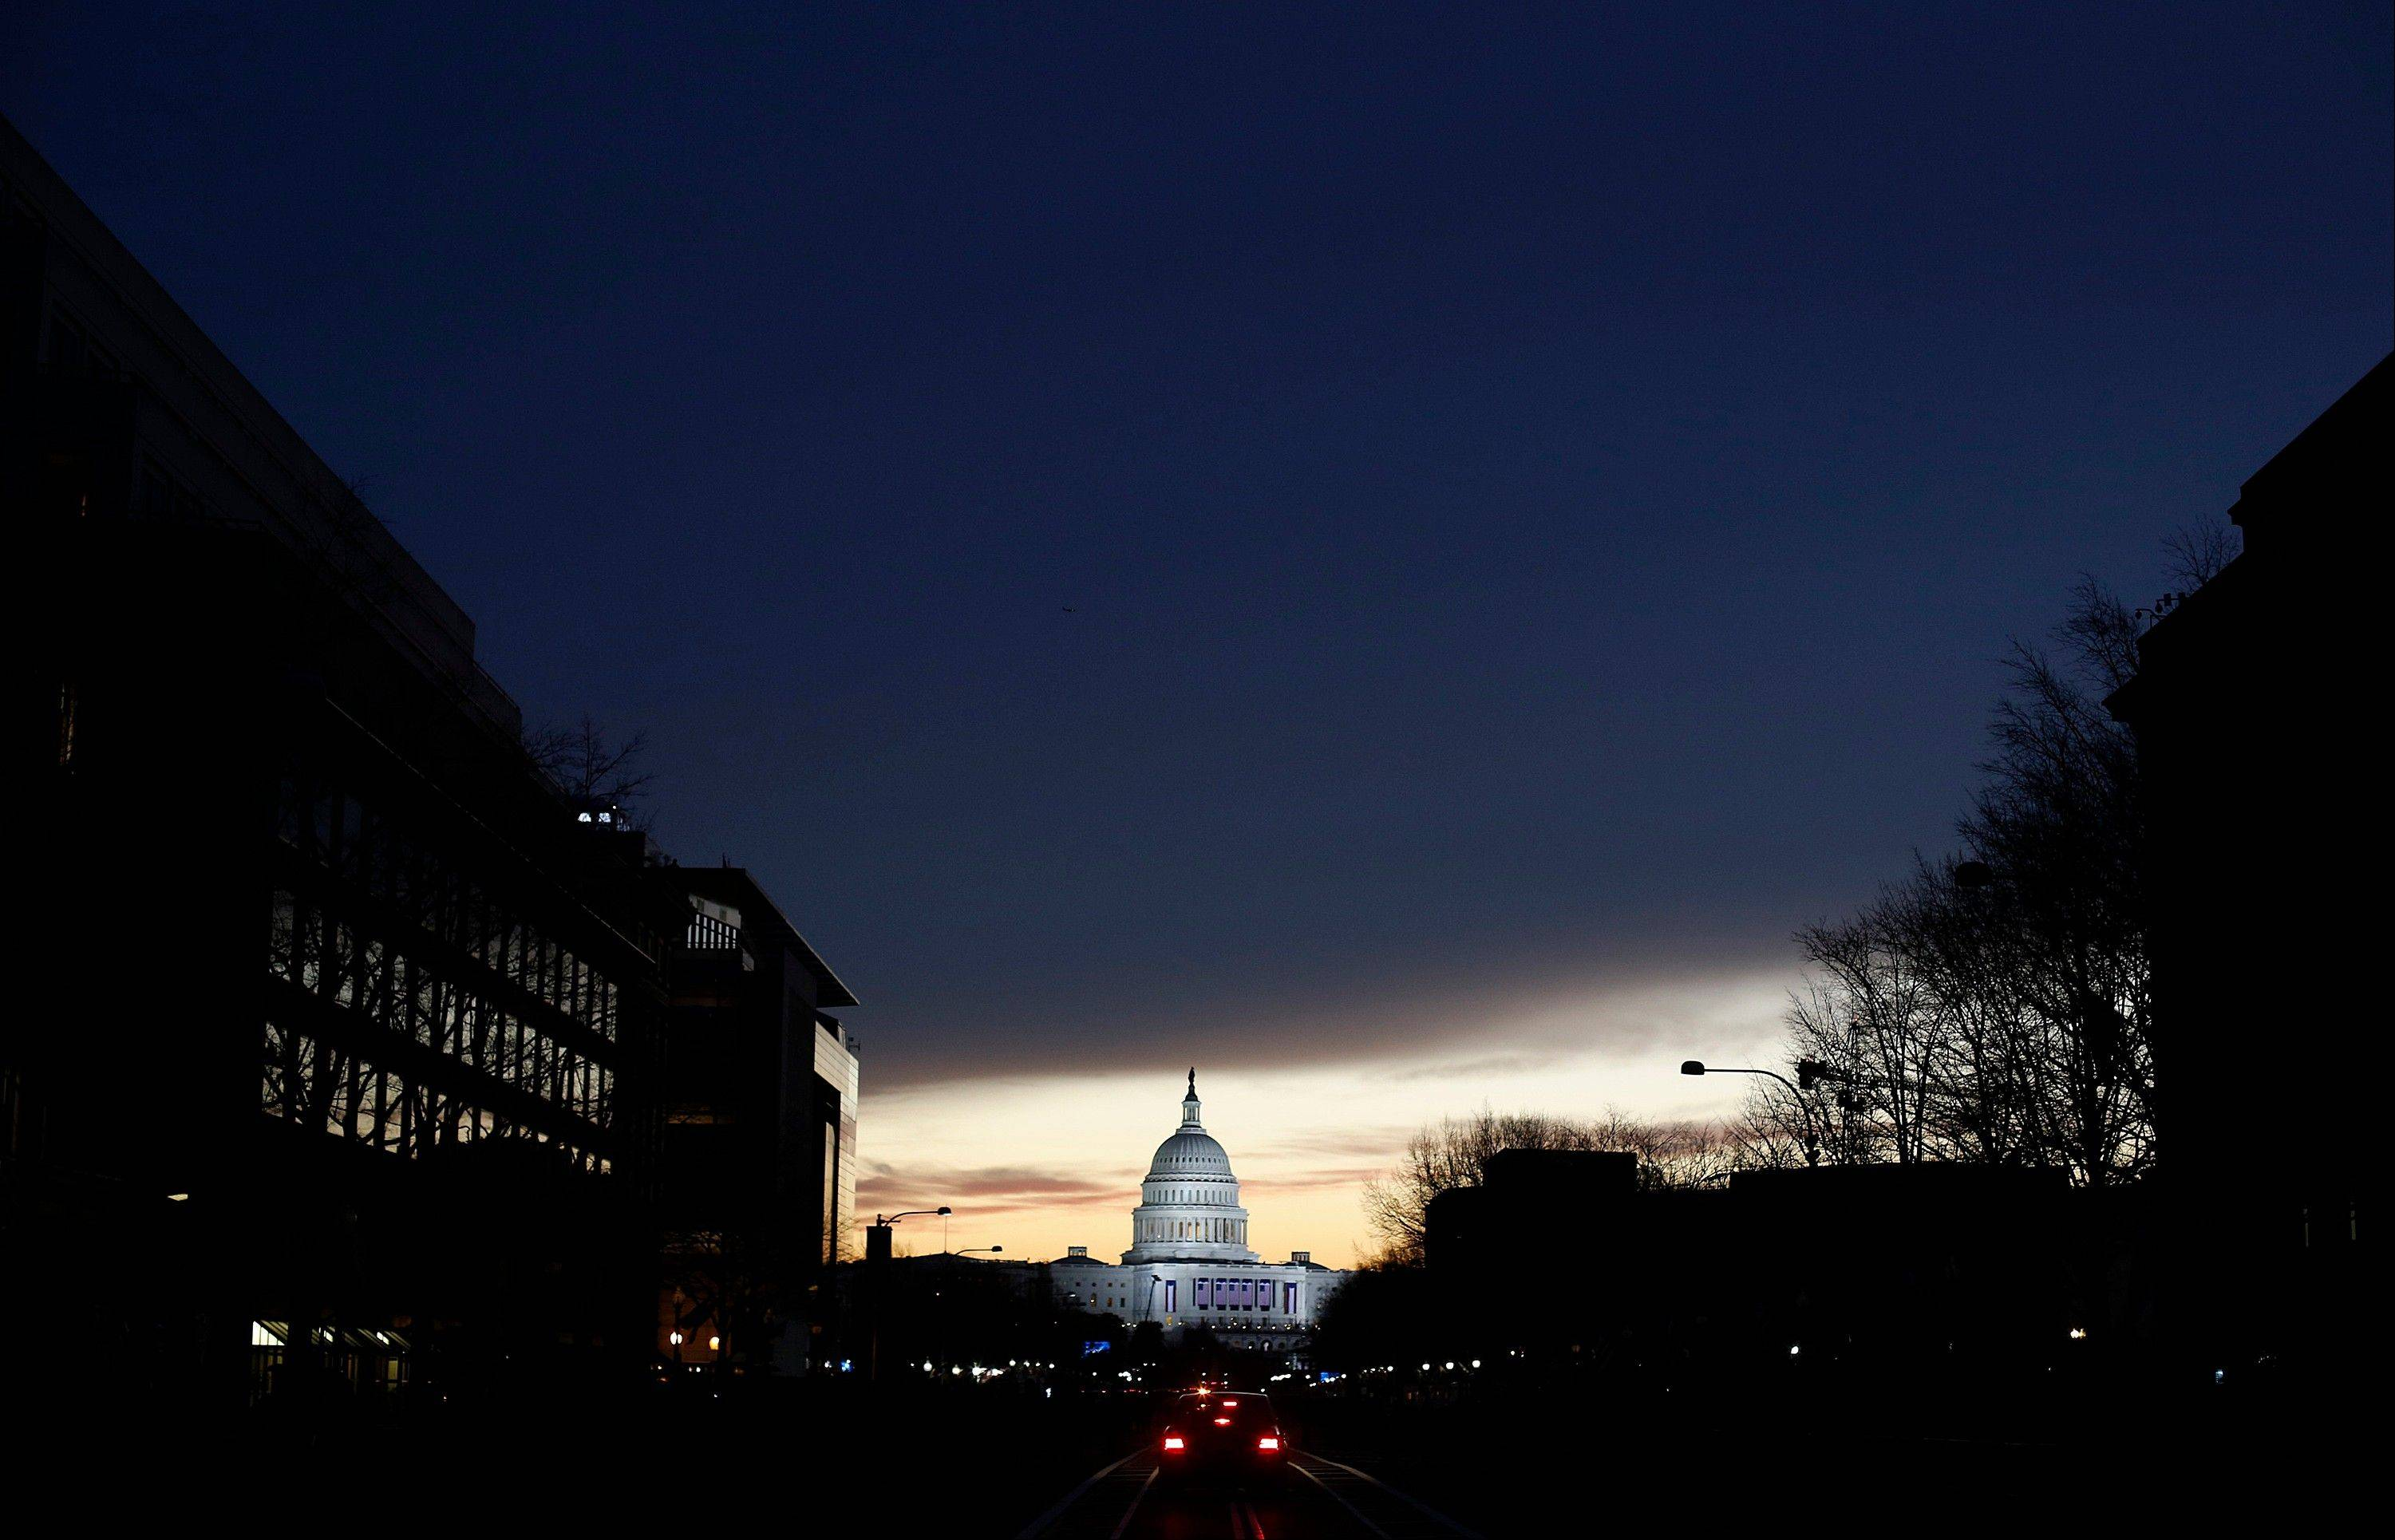 The sun rises behind the Capitol building before the start of the U.S. presidential inauguration in Washington, D.C., U.S., on Monday, Jan. 21, 2013.